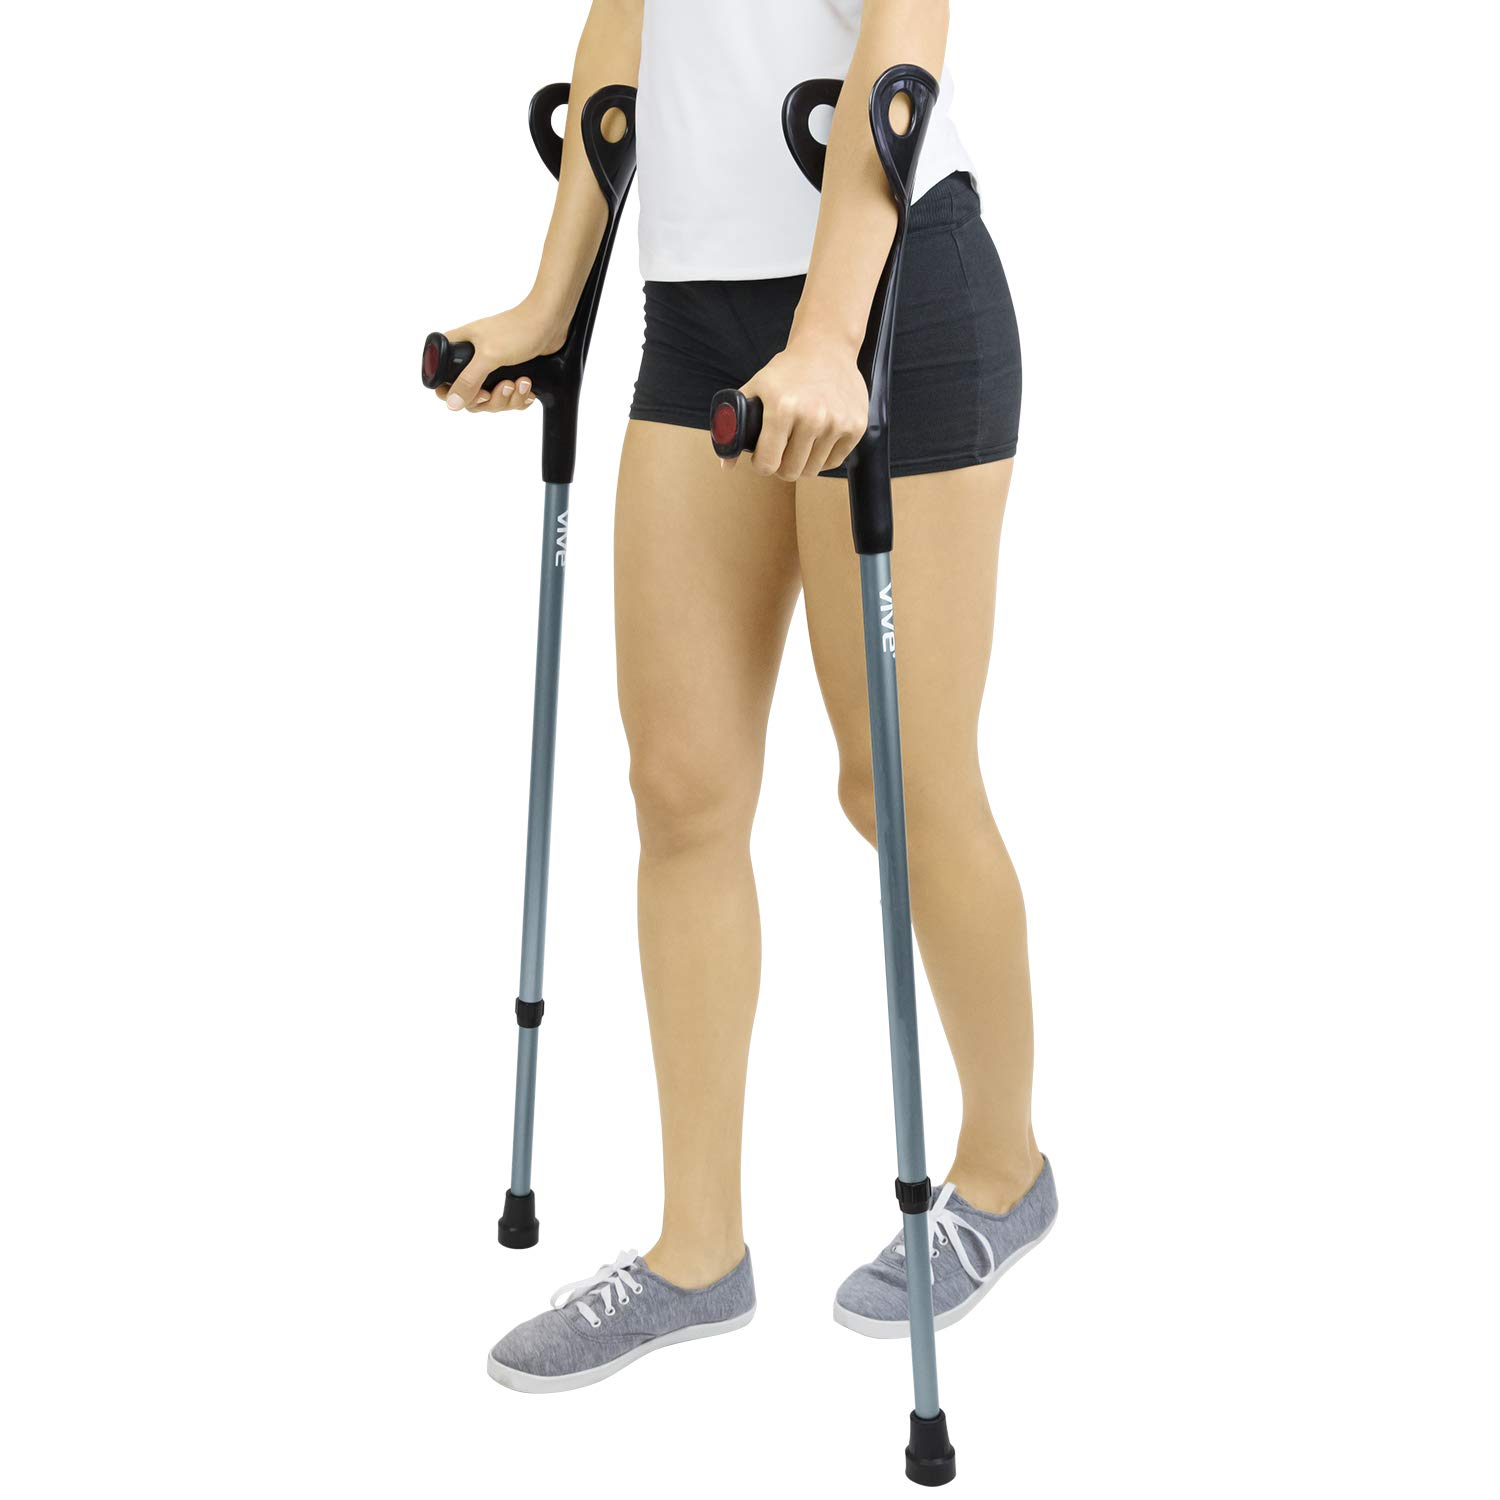 Forearm Crutches by Vive (Pair) - Lightweight Arm Cuff Crutch - Adjustable, Ergonomic, Heavy Duty for Standard and Tall Adults - Comfortable on Wrist - Molded, Non Skid Replaceable Rubber Tips